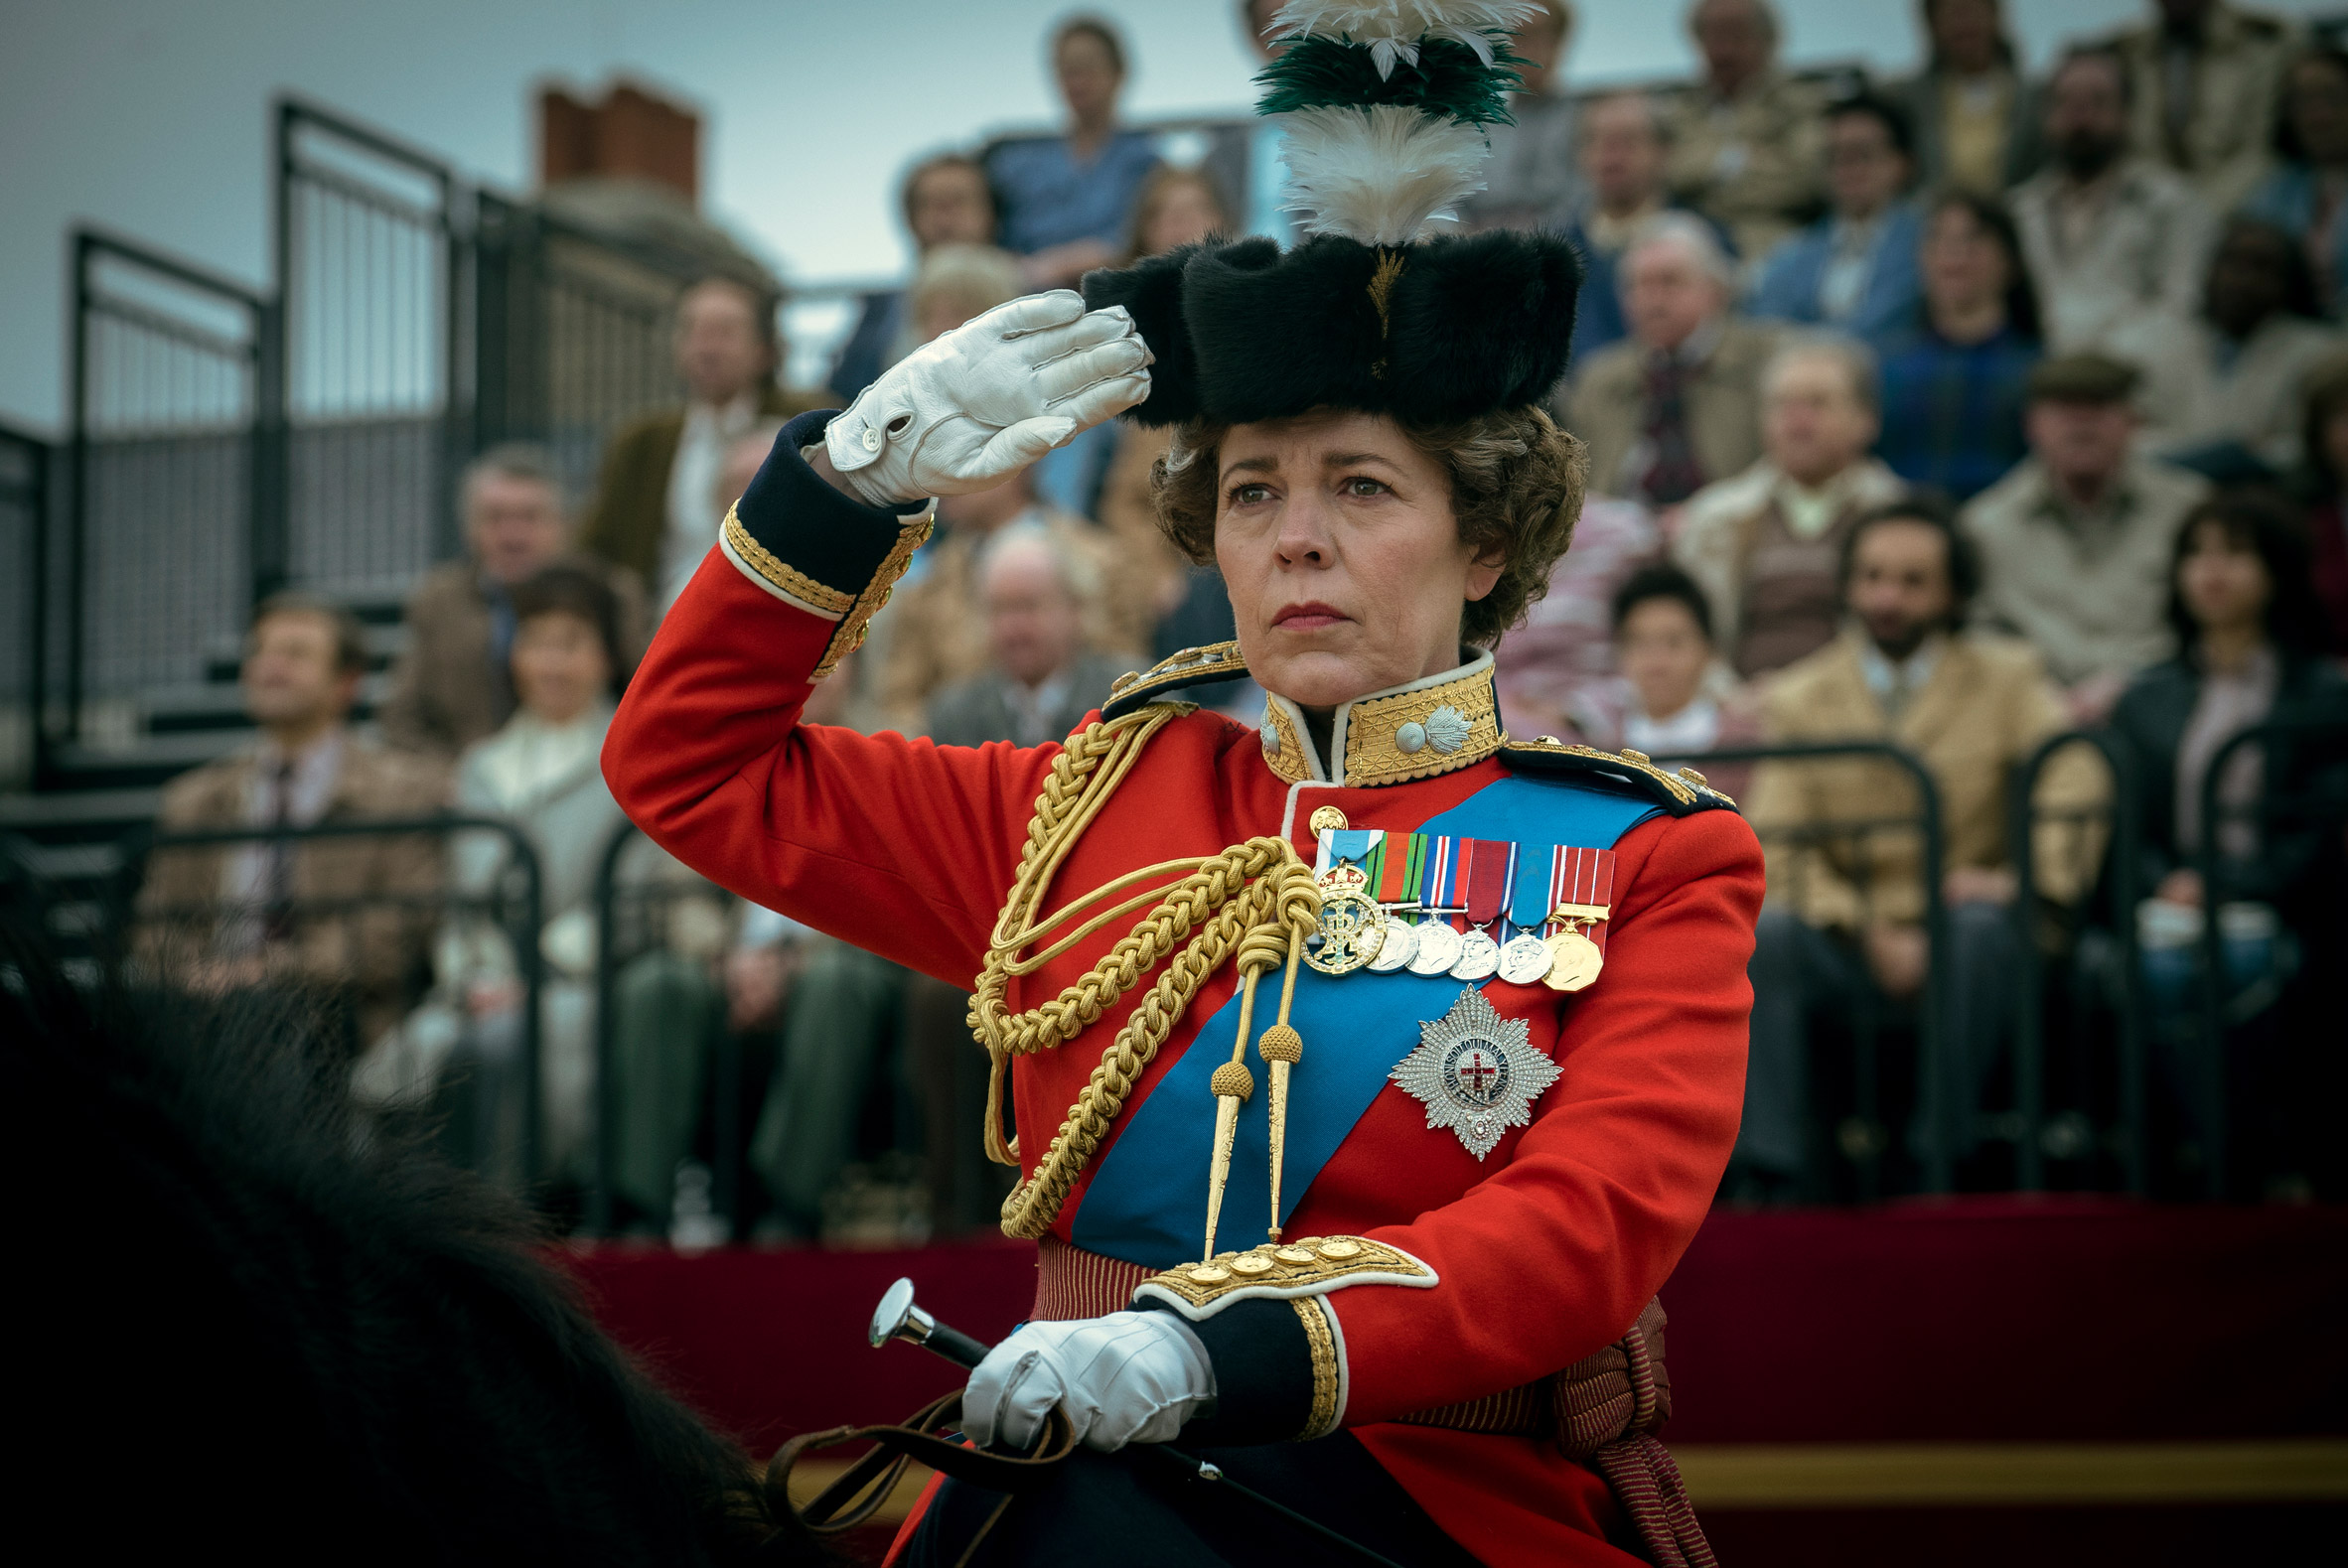 Olivia Coleman as the Queen during the Trooping of the Colour in The Crown season 4